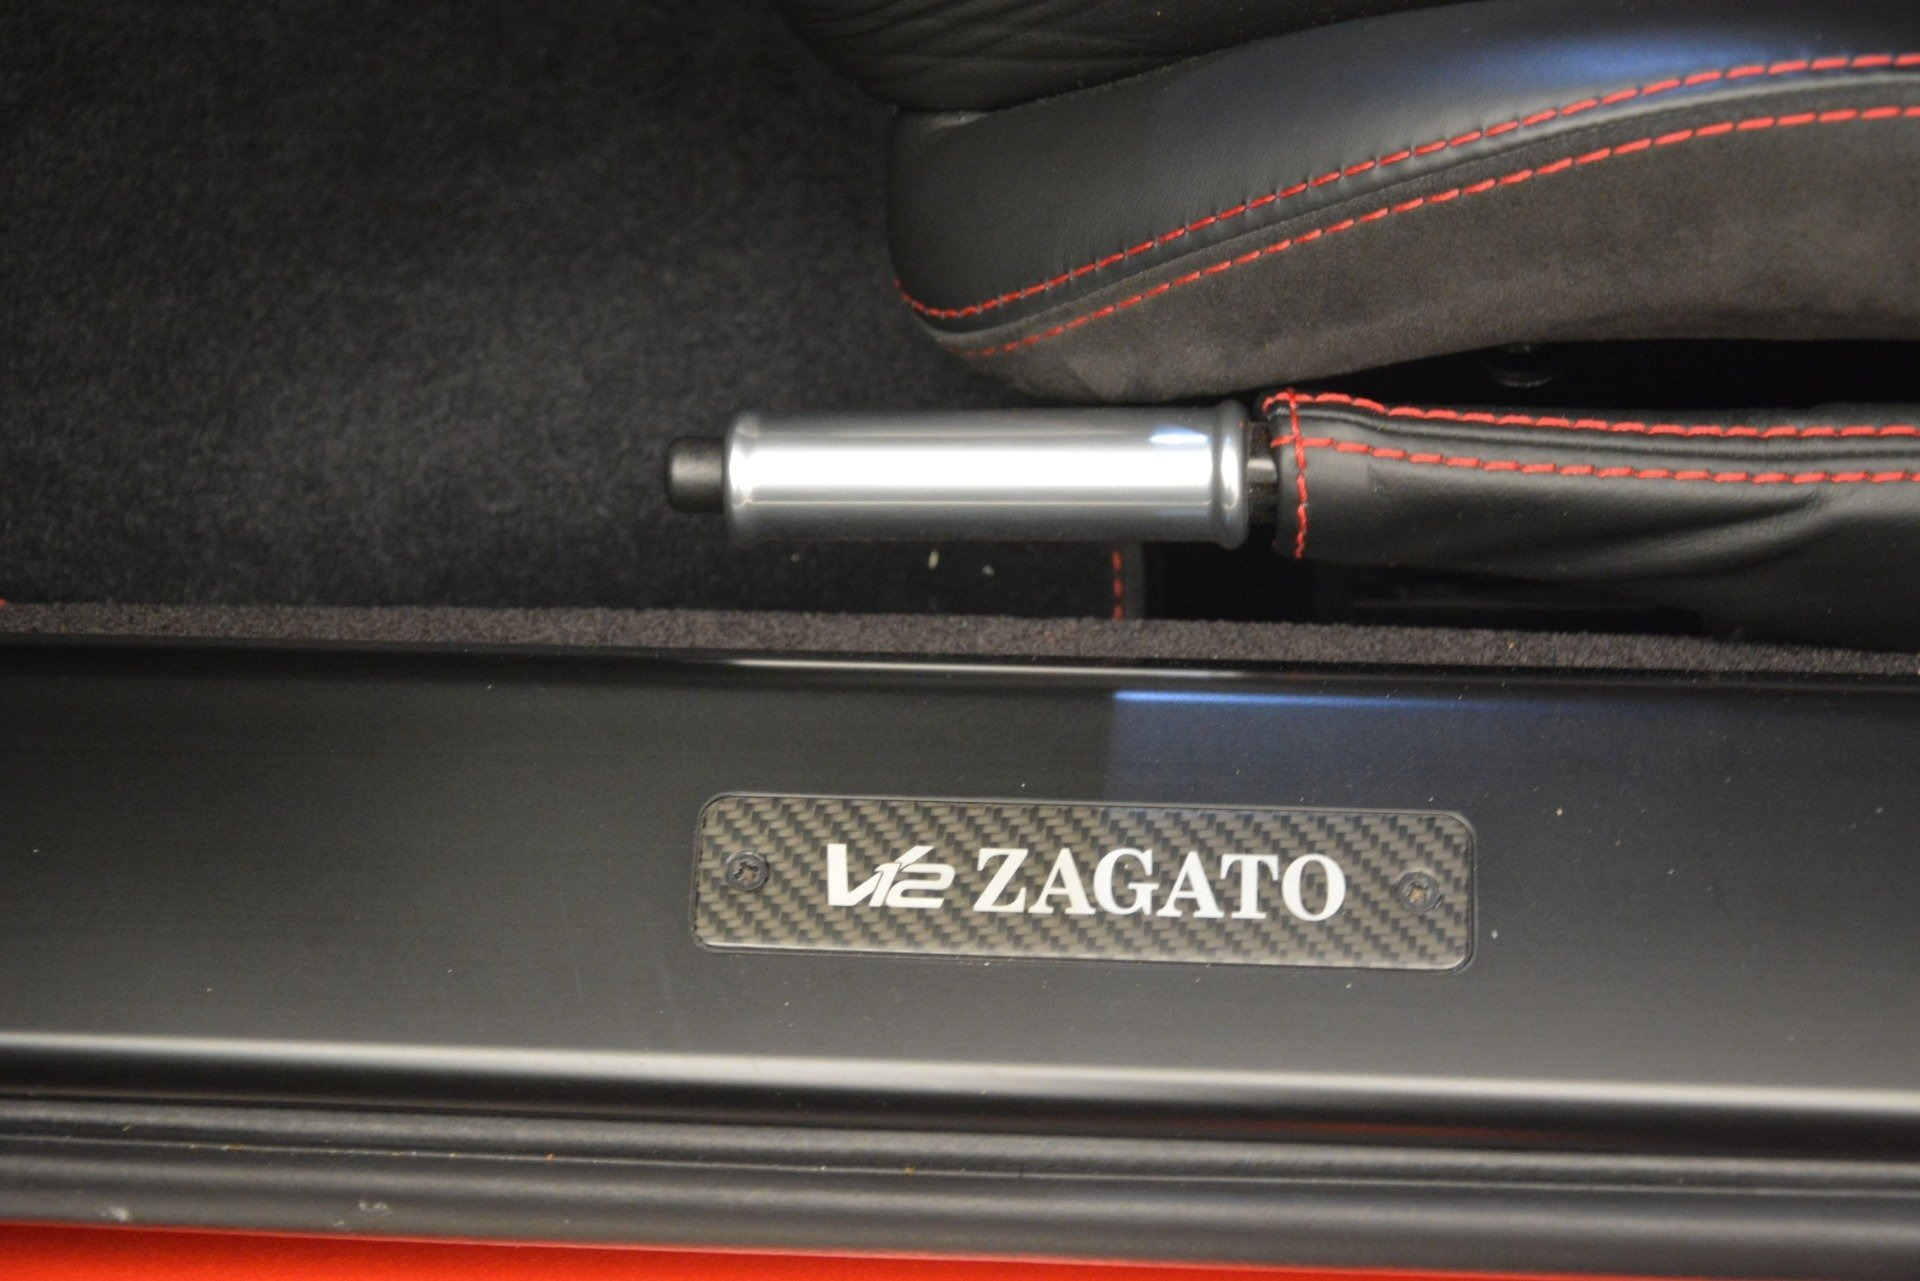 Used 2013 Aston Martin V12 Zagato Coupe For Sale In Greenwich, CT 3181_p16